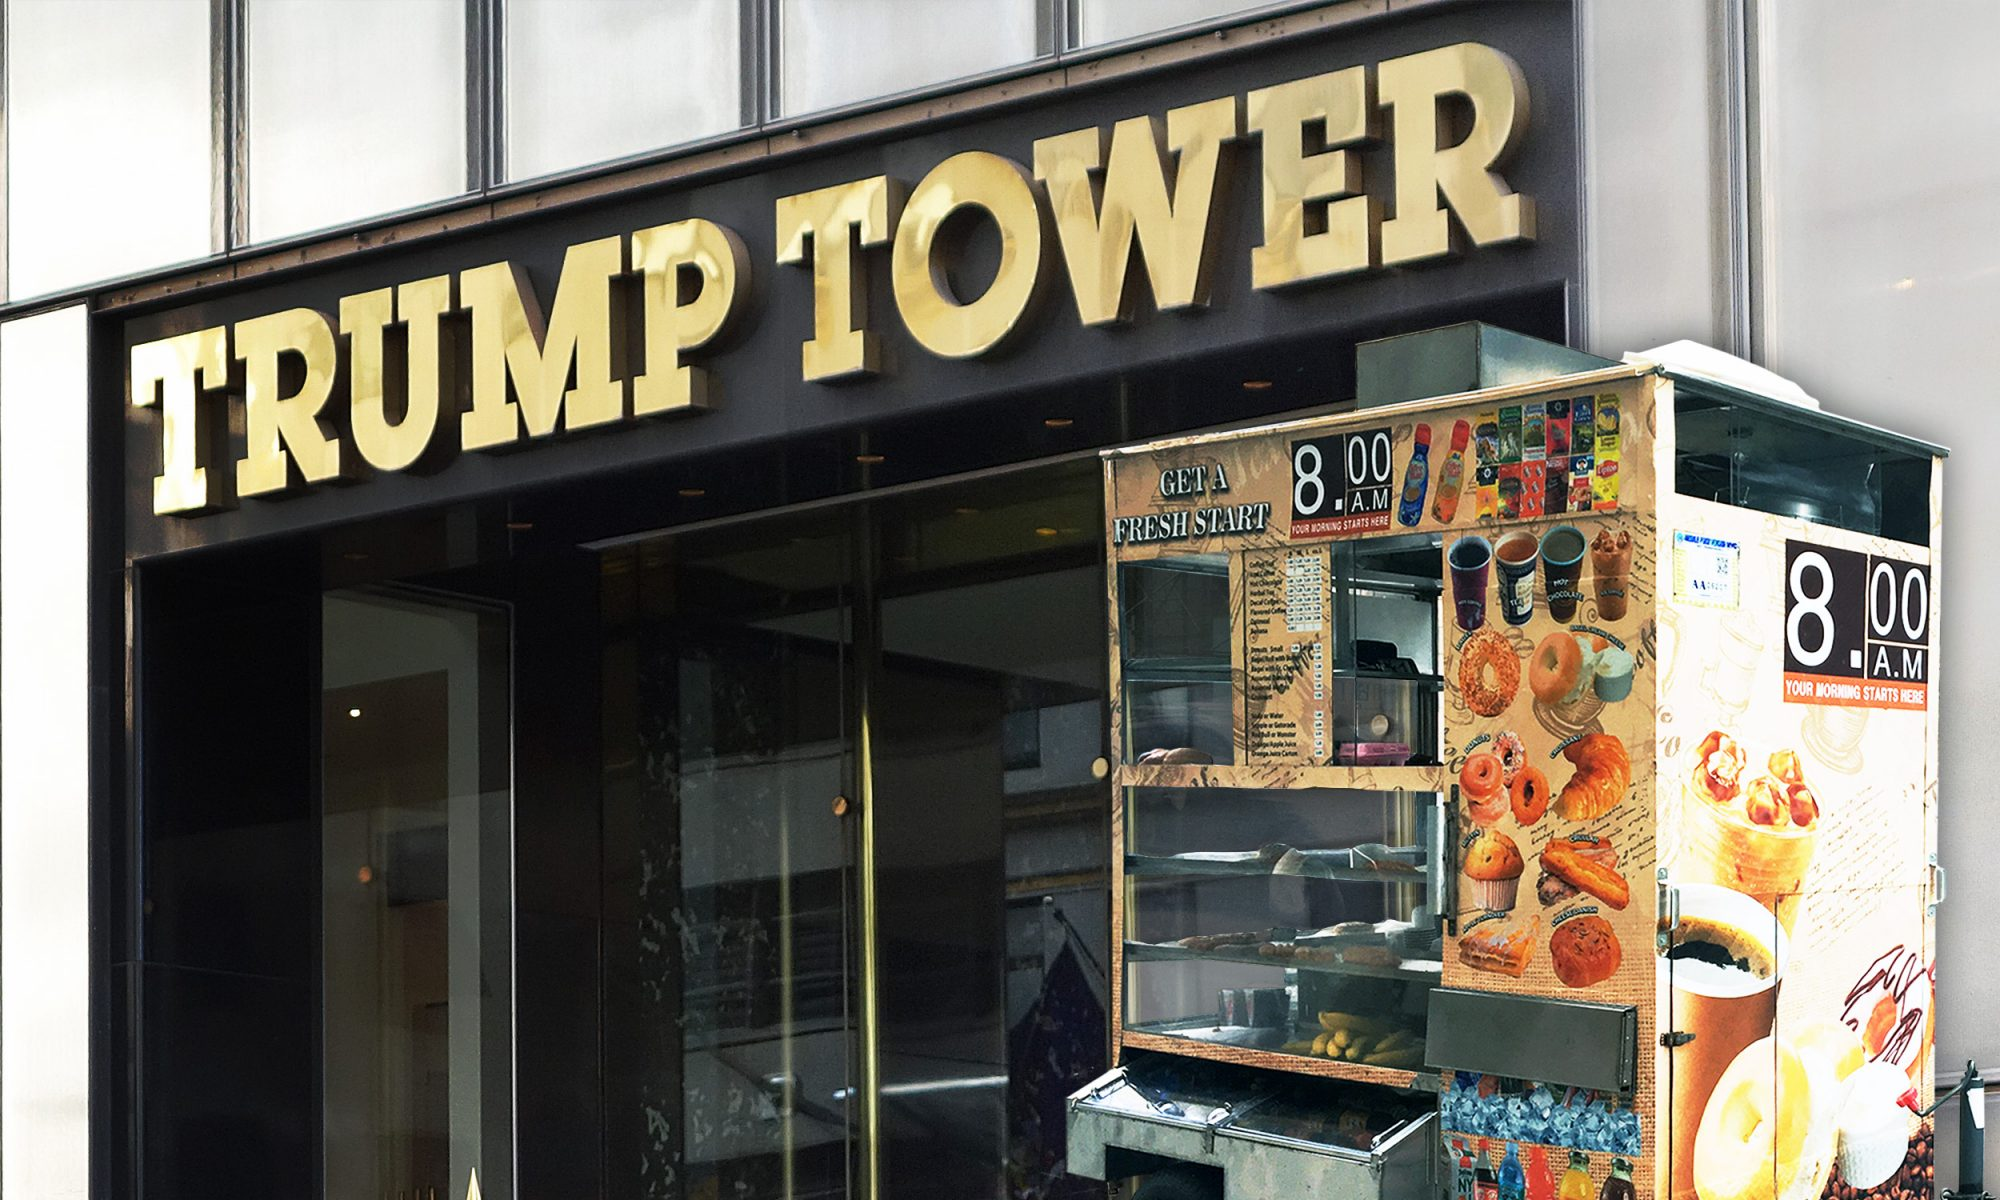 Trump tower food carts